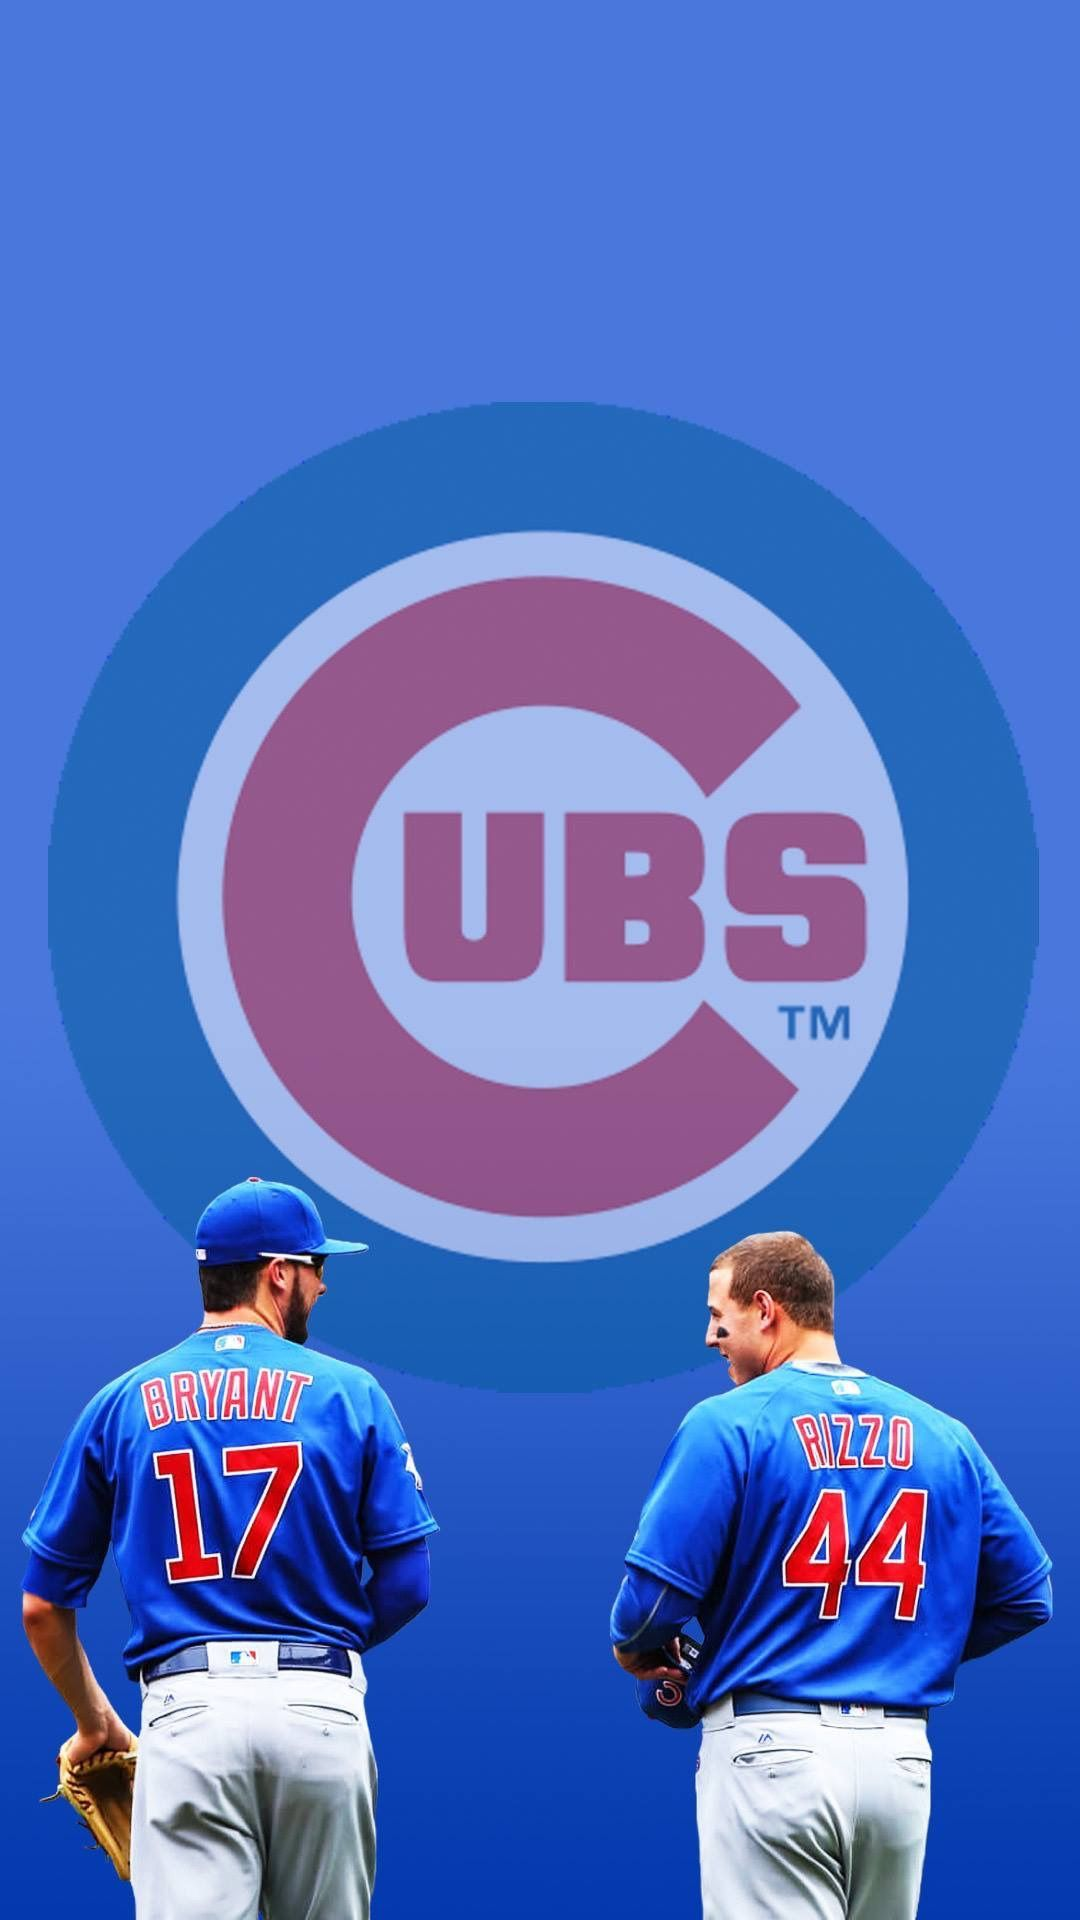 Cubs Wallpapers Iphone Hupages Download Iphone Wallpapers Chicago Cubs Chicago Cubs Wallpaper Chicago Sports Teams